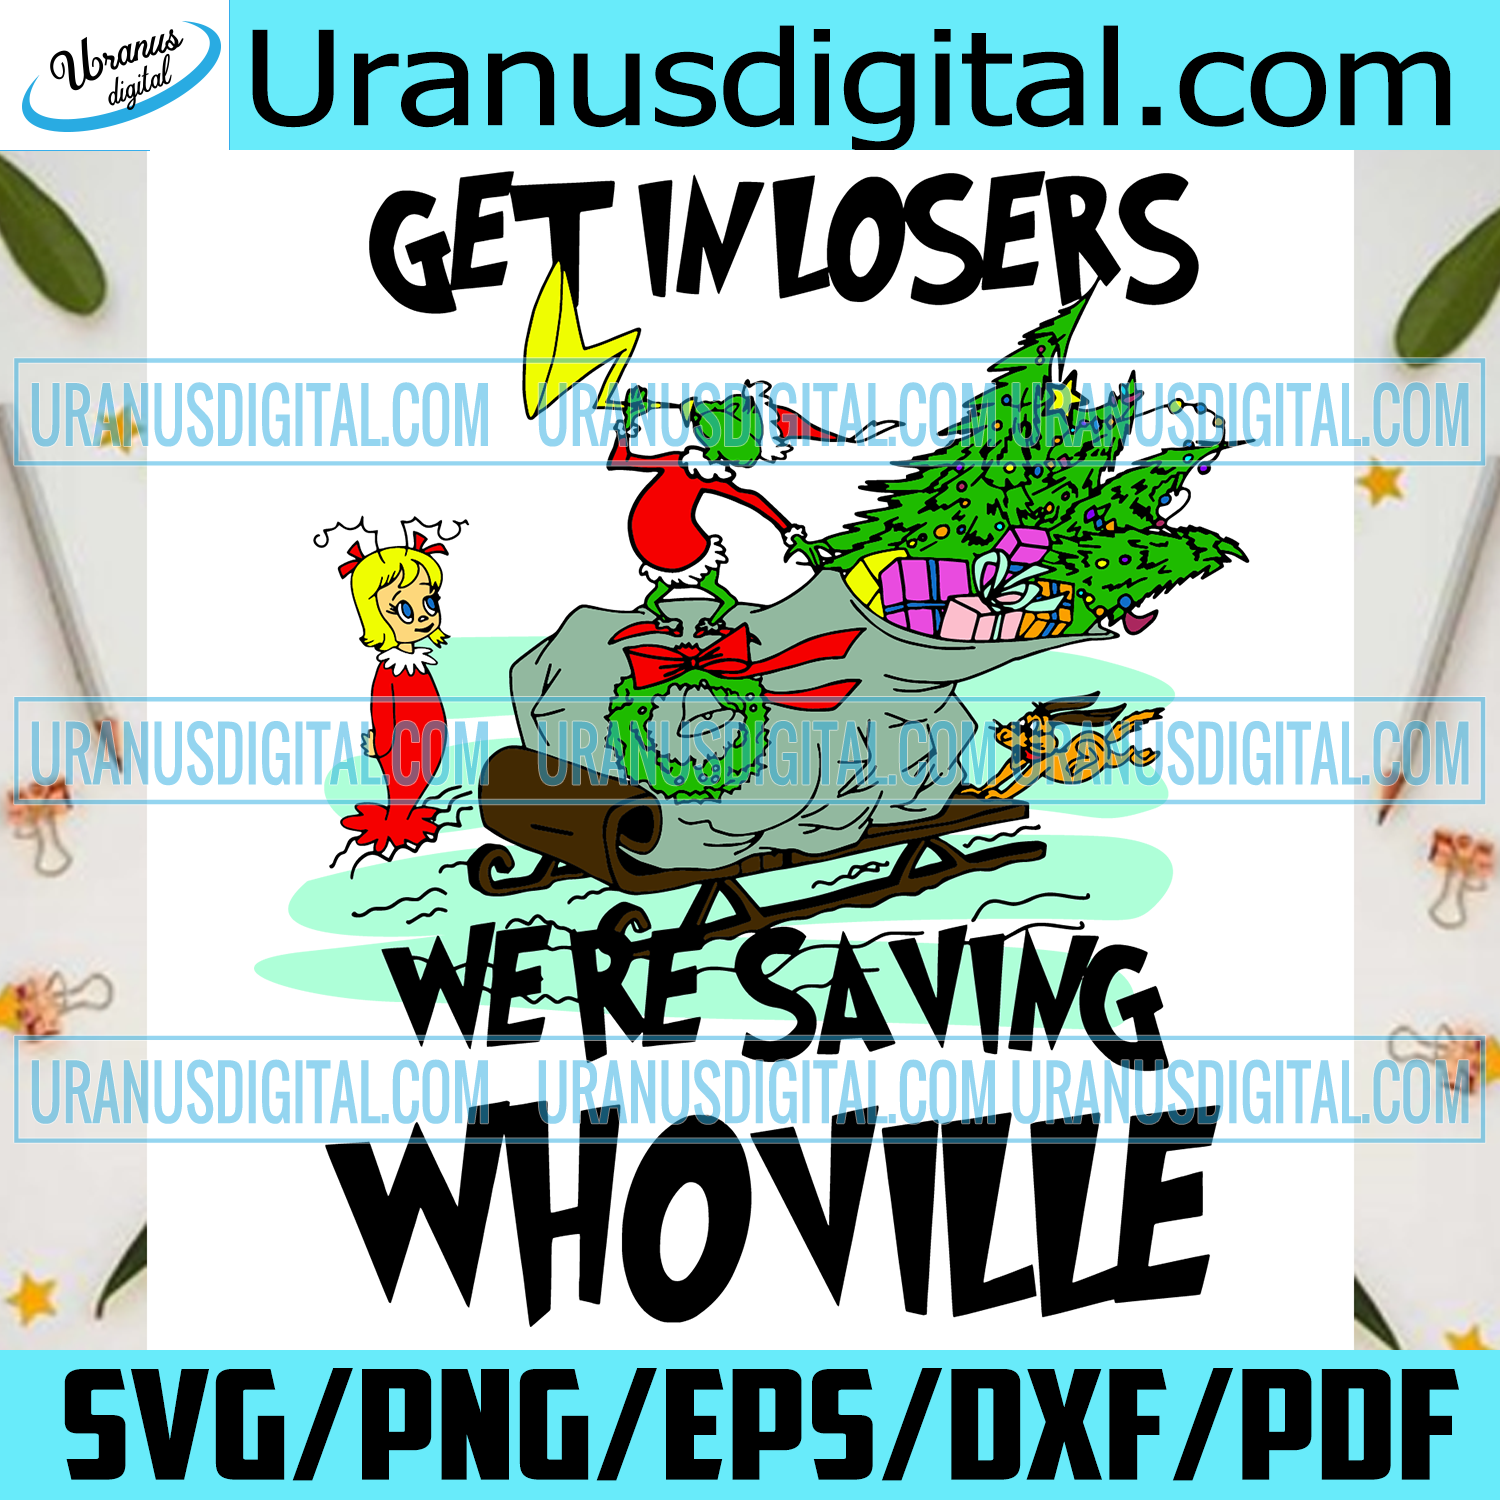 Get In Losers We Are Saving Whoville Svg, Christmas Svg, Xmas Svg, Merry Christmas, Christmas Gift, Christmas Grinch, Cindy Lou Who, Whoville, Grinch Svg, Grinchmas, Whoville Holiday, Grinch Saying